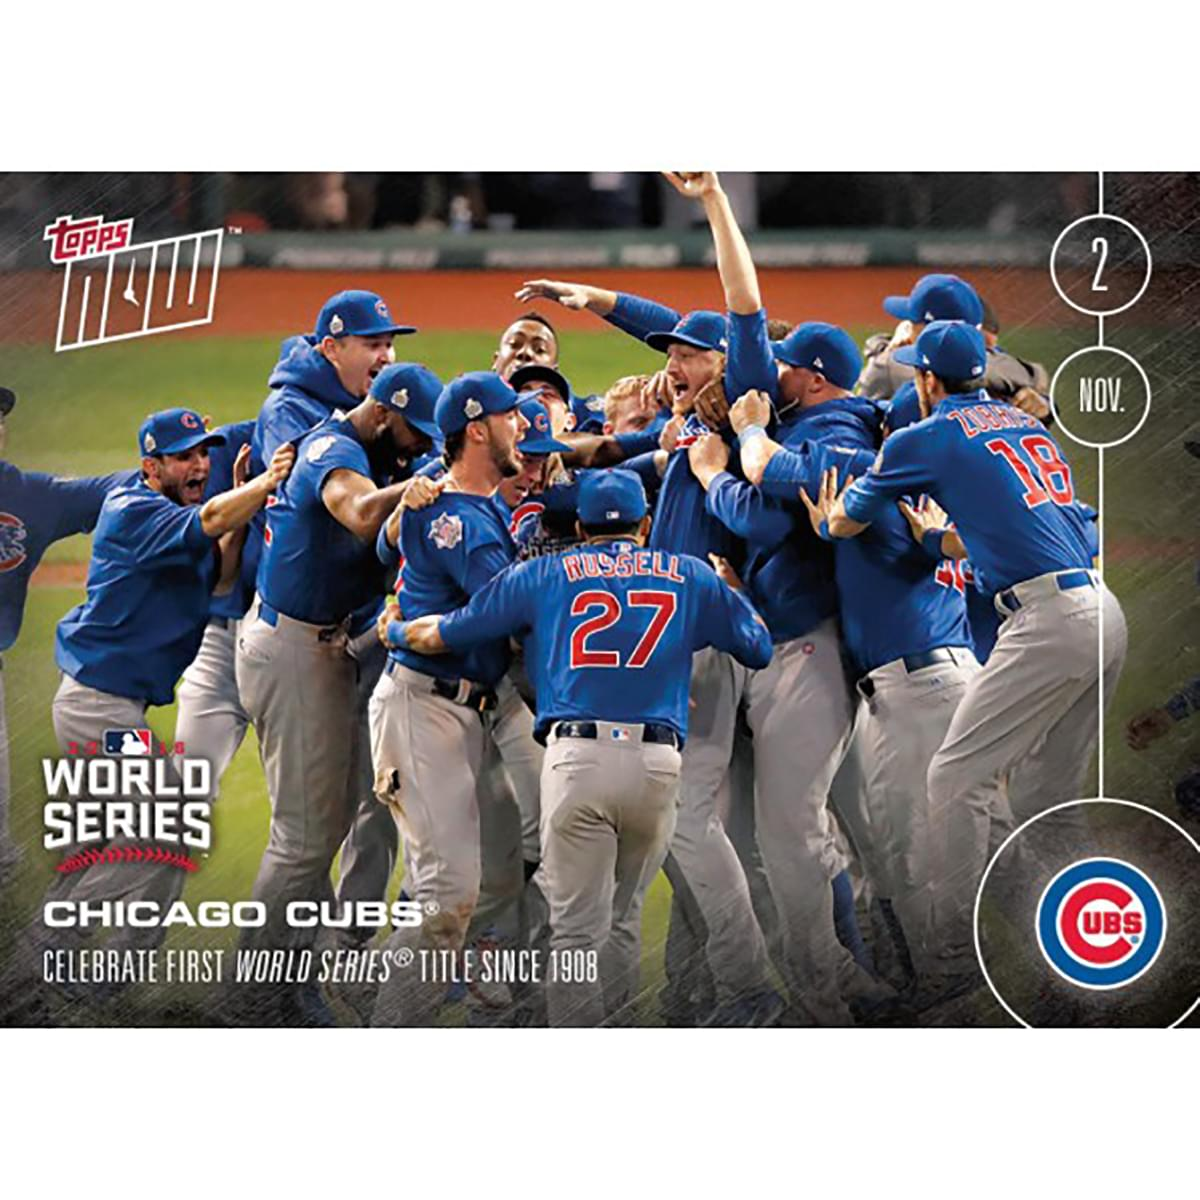 Chicago Cubs MLB Celebrate First World Series #665 2016 Topps NOW Trading Card